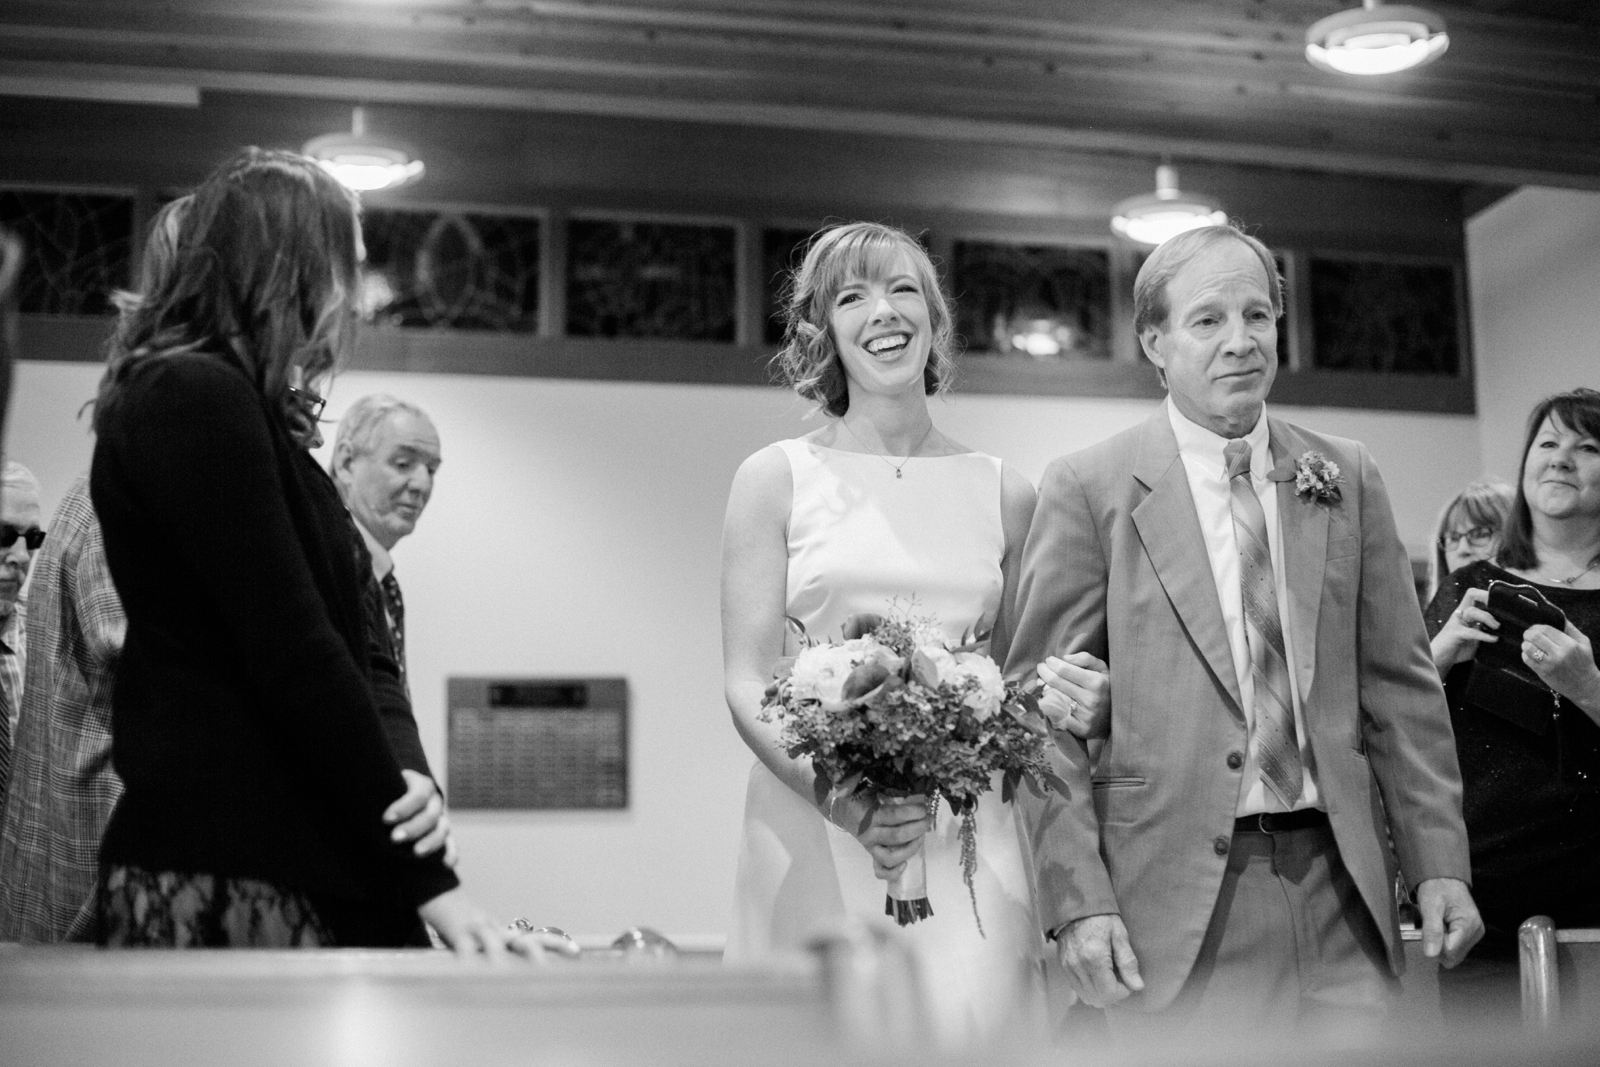 ringwood new jersey wedding photographer shannon griffin_0021.jpg